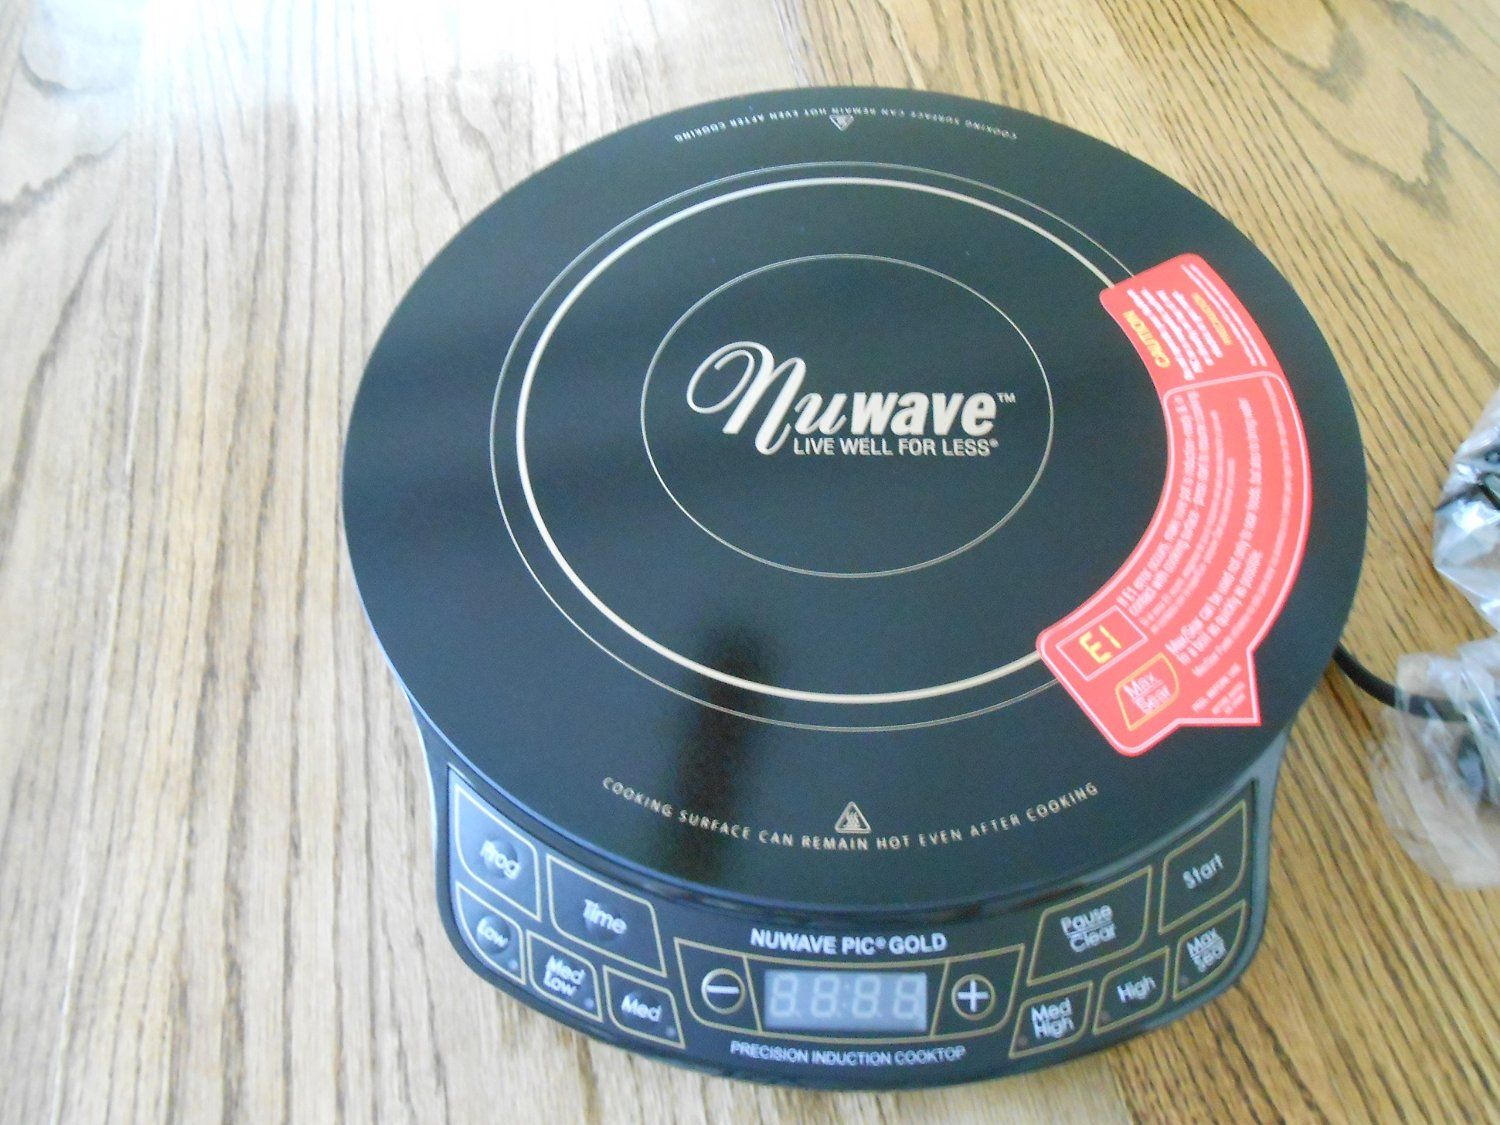 Nuwave Pic Gold 1500 Making Your Life Easier Portable Induction Cooktop Induction Cooktop Cooktop Nuwave